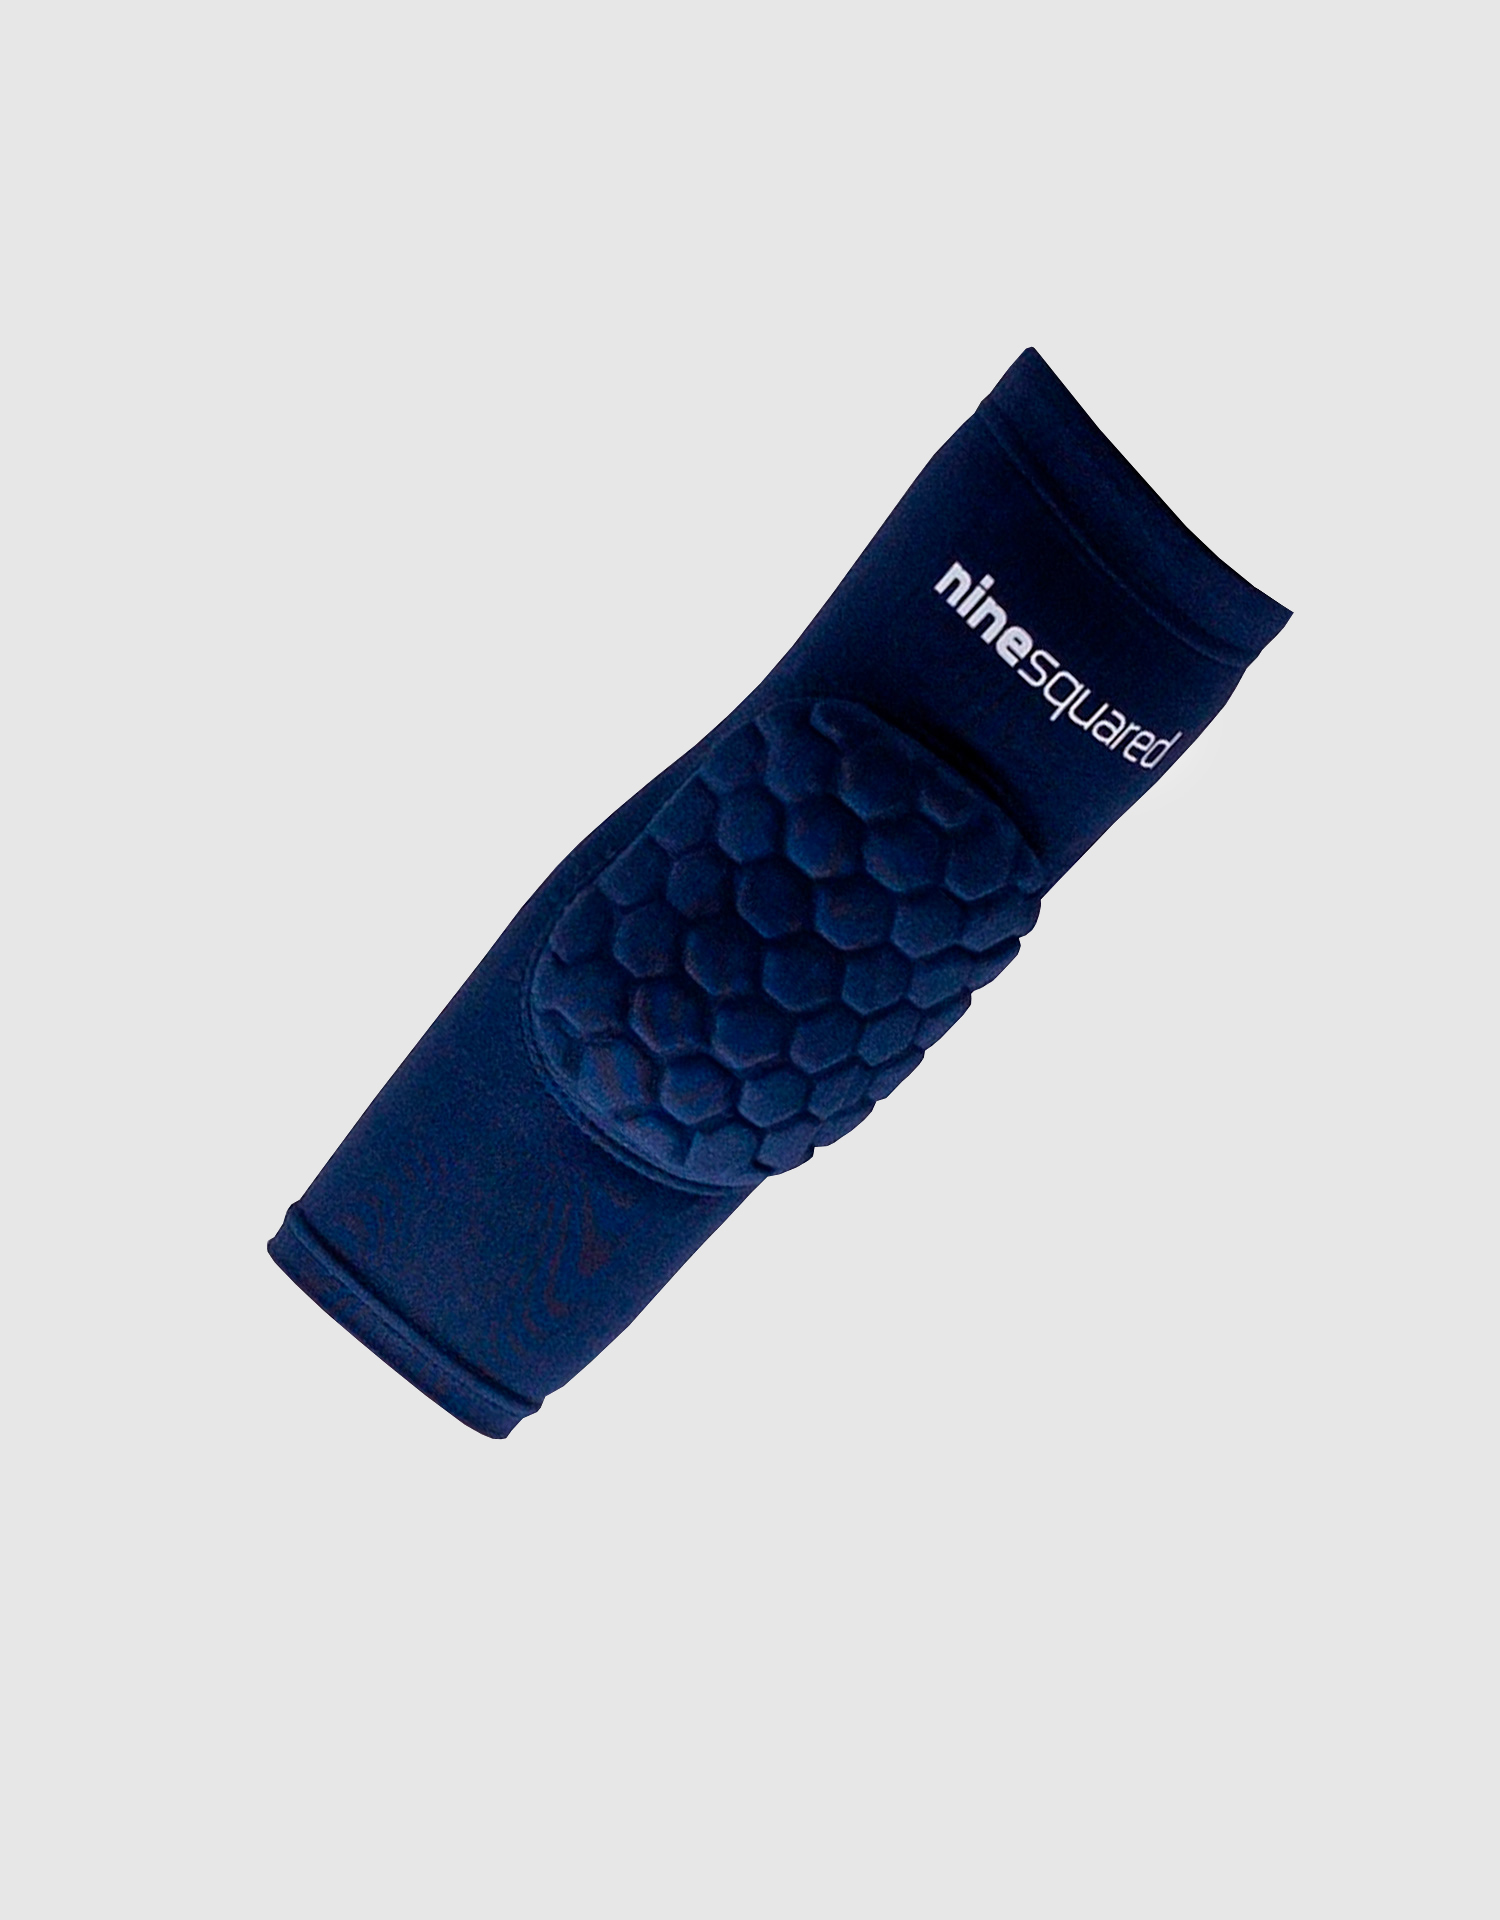 volleyball elbow pads blue ninesquared